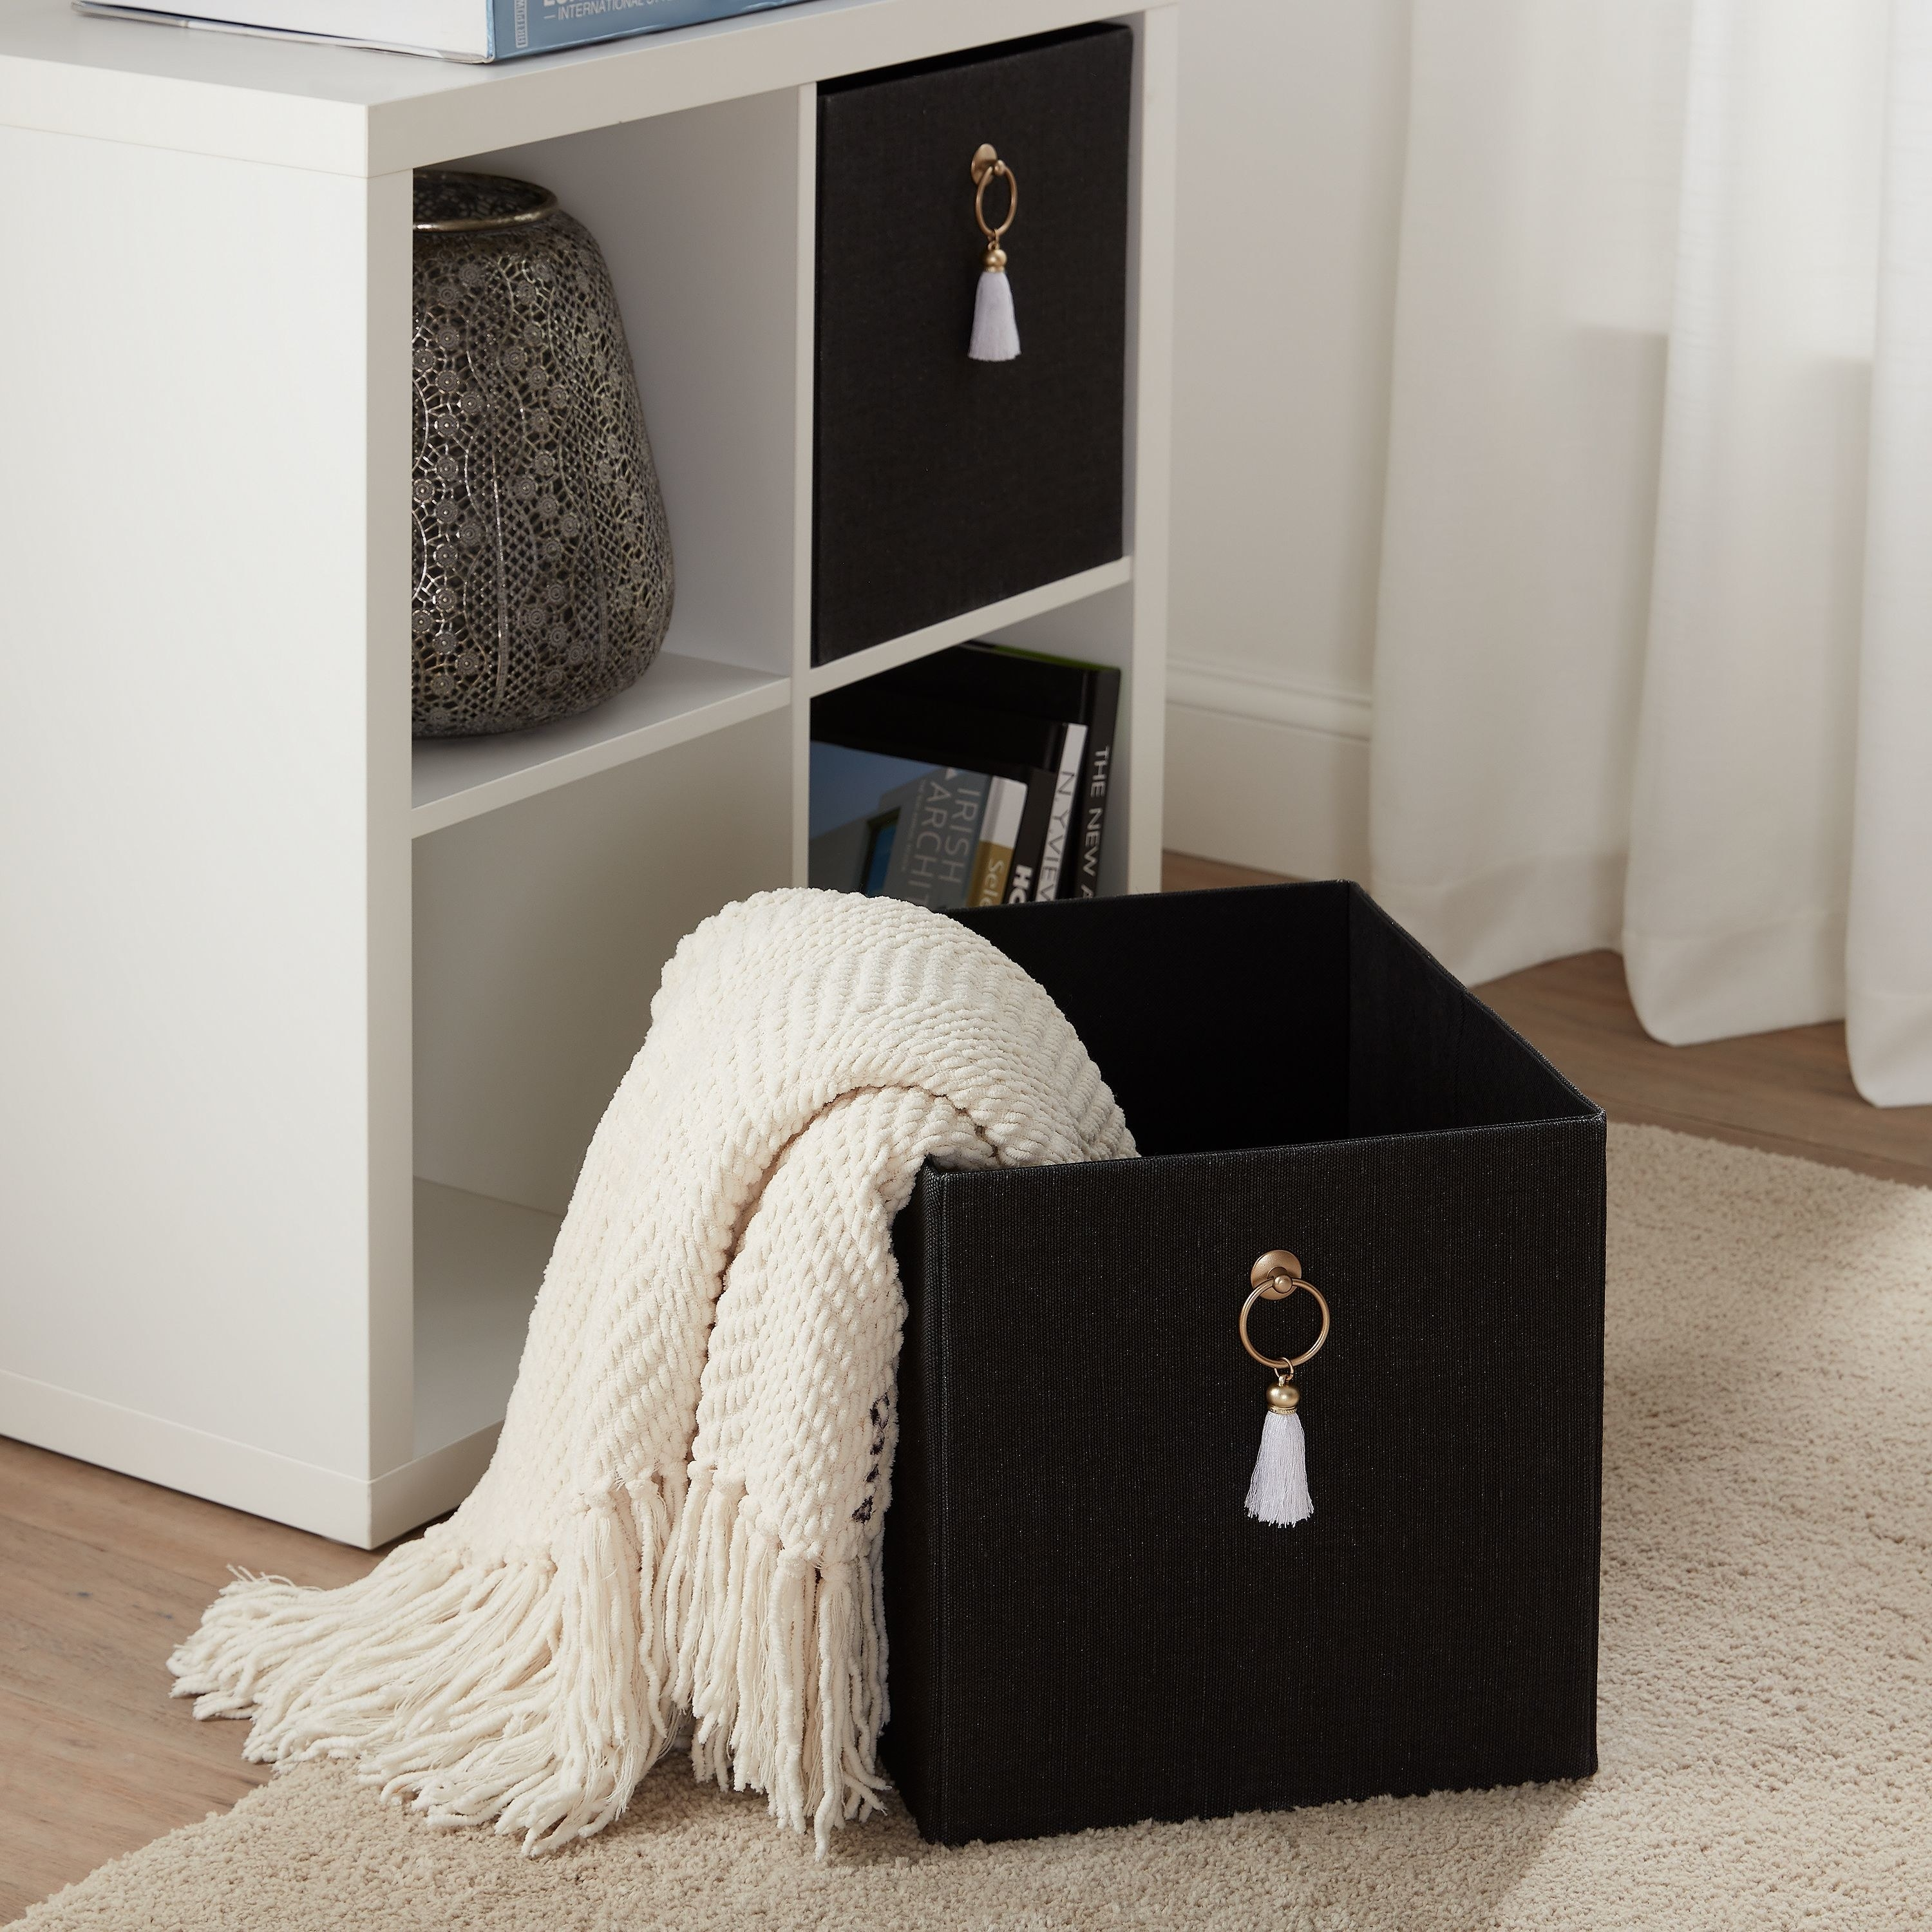 The black, square bin with gold, tasseled ring handles